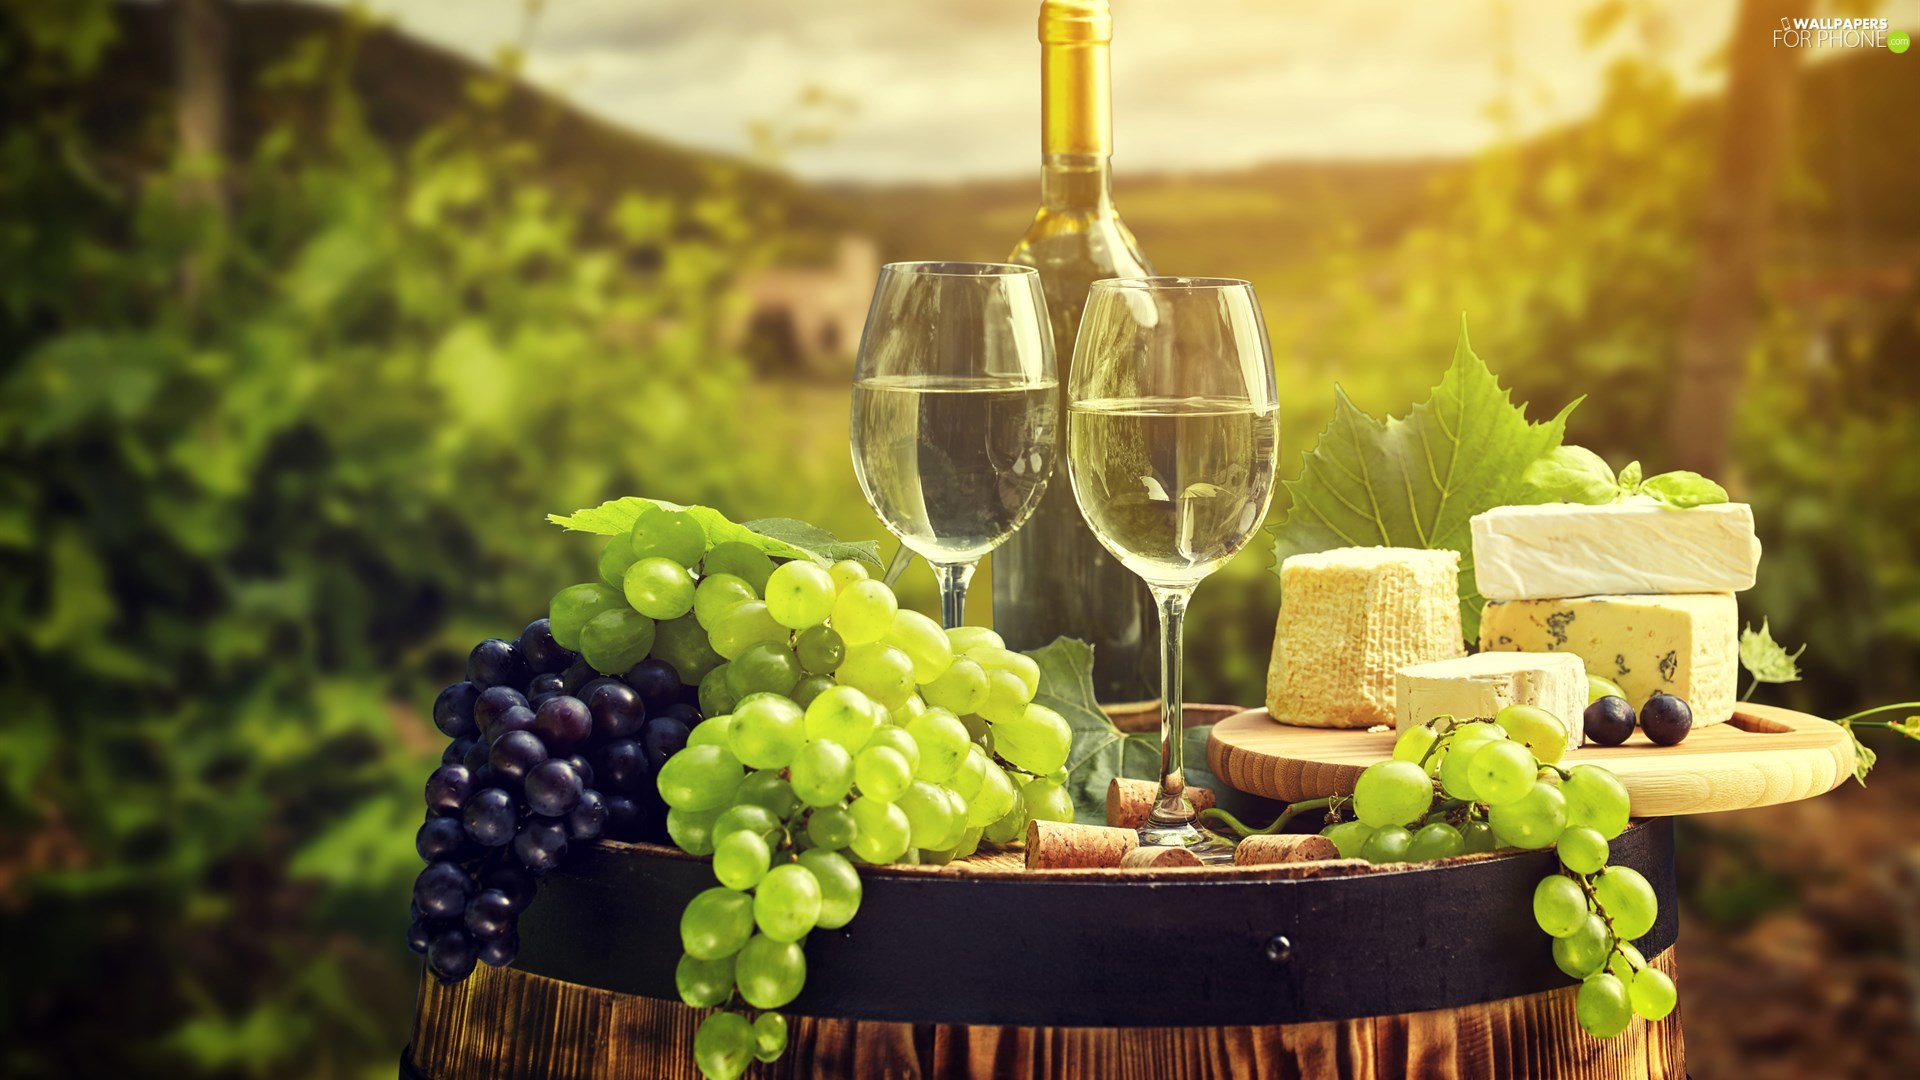 Bottle, Two cars, Cheese, glasses, Wine, Grapes, barrel